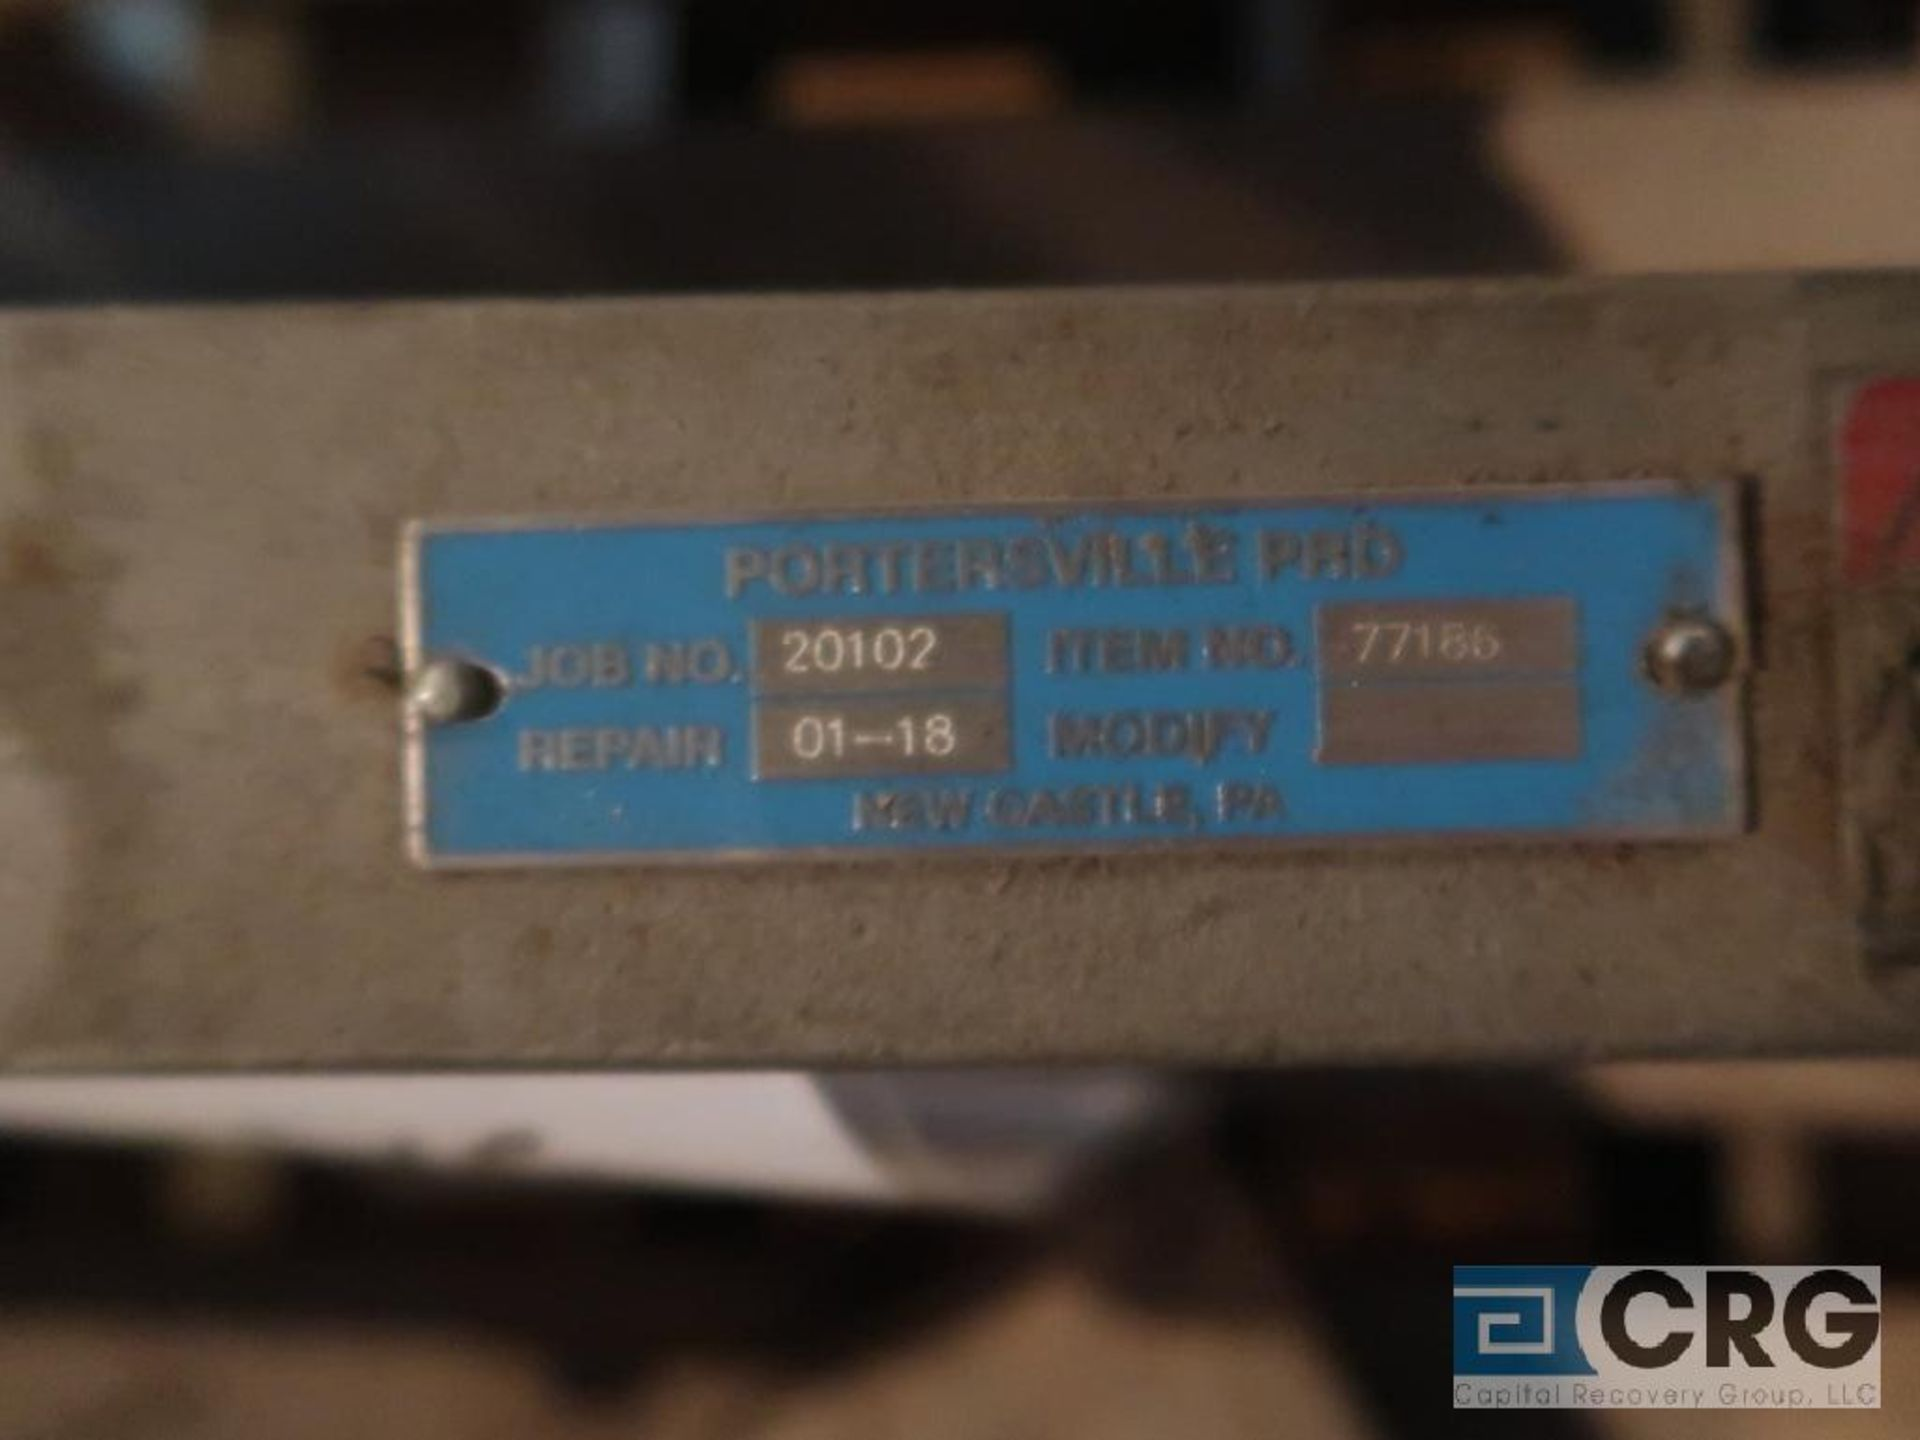 Dezurik 12 in. stainless pneumatic gate valve, 150 CWP (Off Site Warehouse) - Image 2 of 2